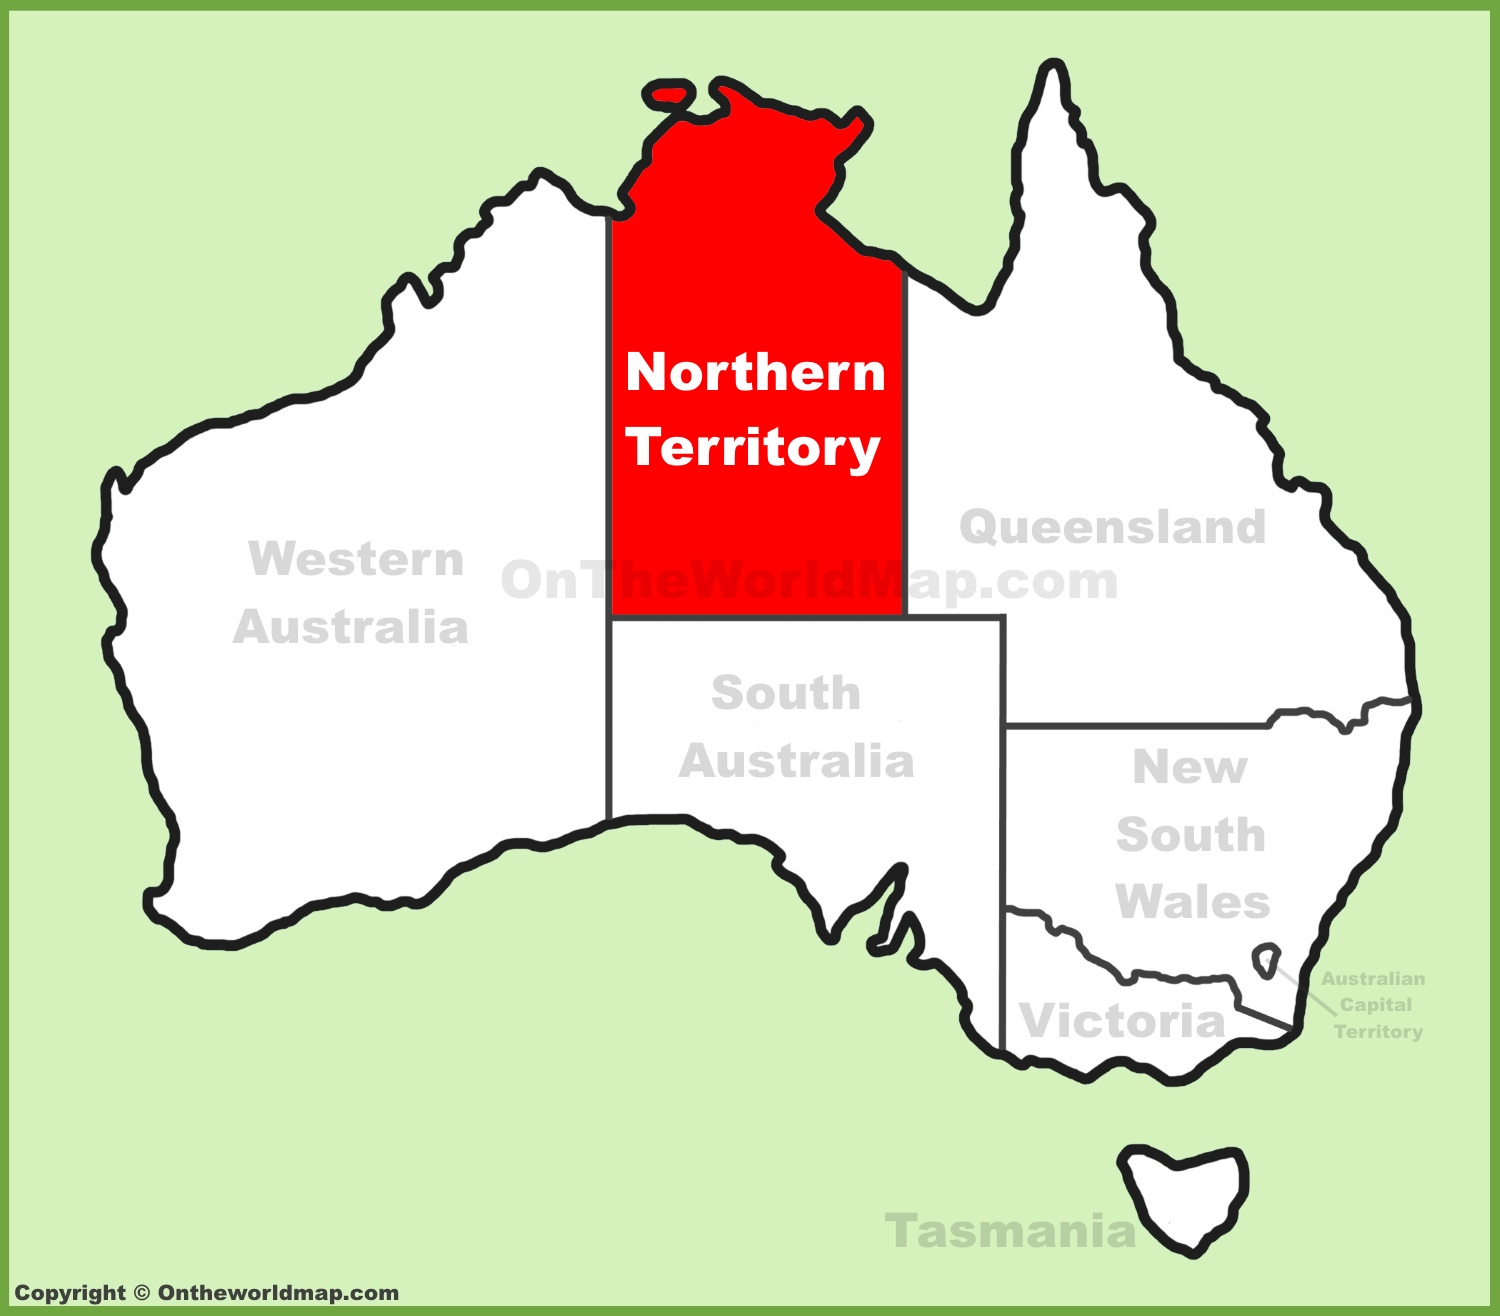 Northern Territory location on the Australia Map